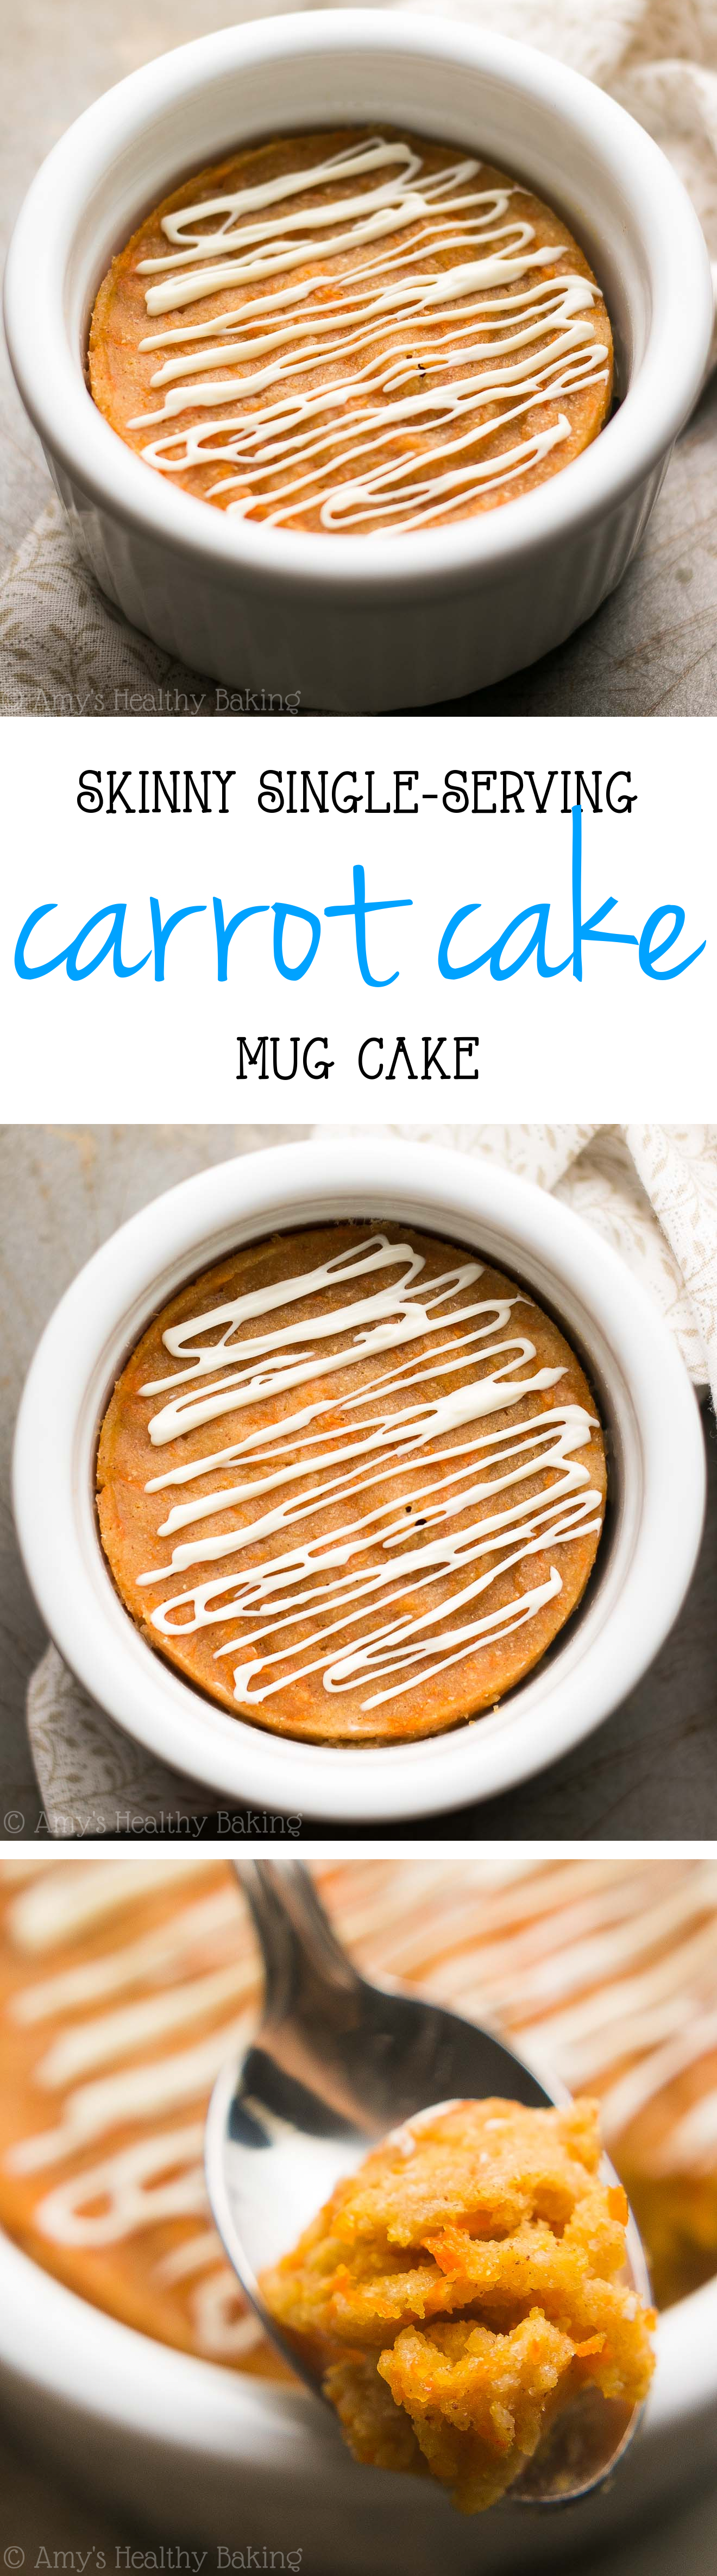 Skinny Single-Serving Carrot Cake Mug Cake -- just 115 calories & nearly 6g of protein! Basically healthy enough for breakfast!